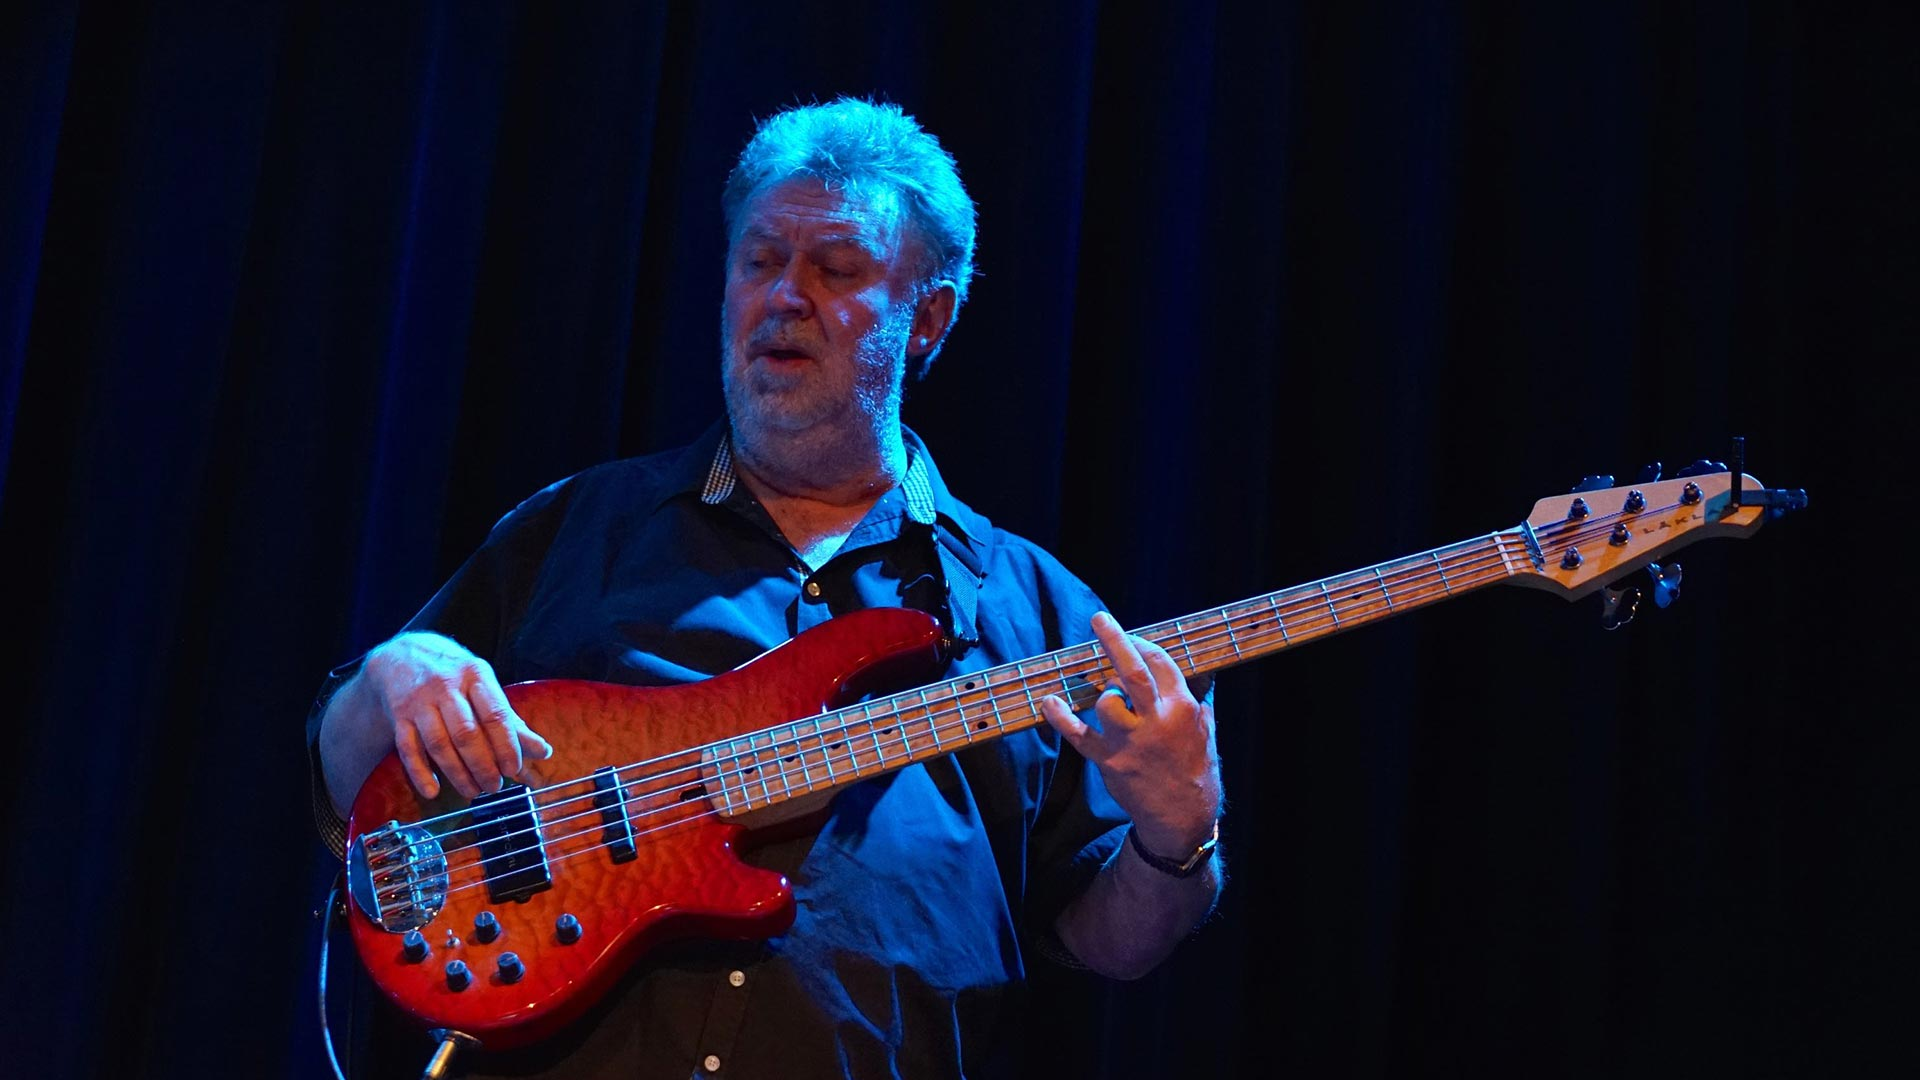 Neil Simpson plays Laklan 5-string bass guitar